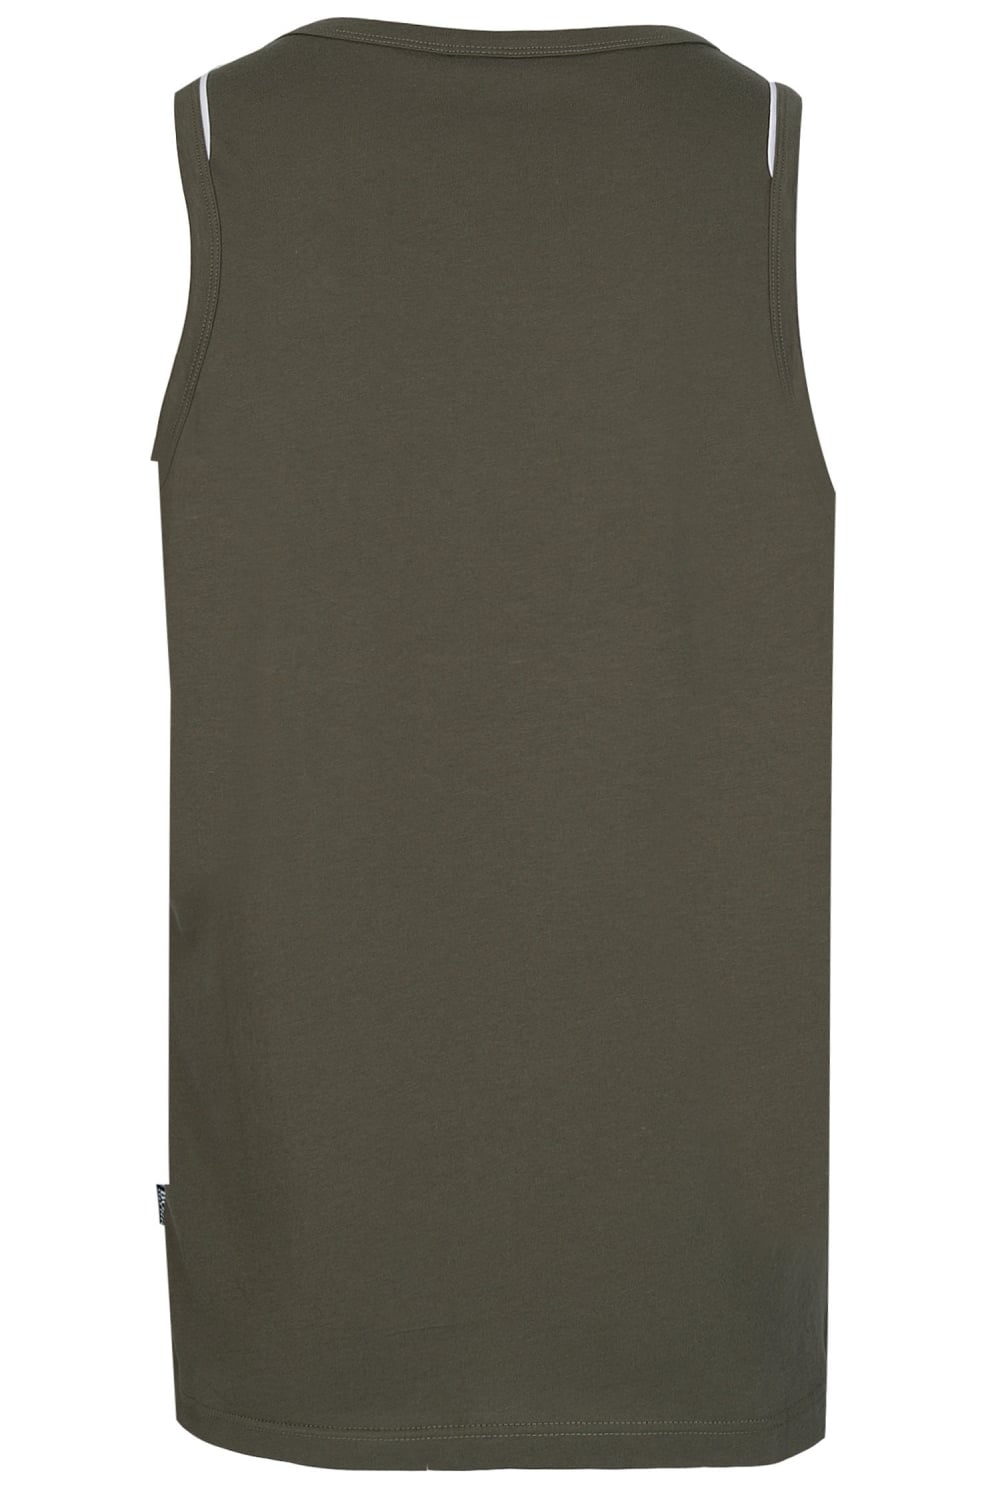 dd9ab12df Hugo Boss Beach Tank Top Khaki